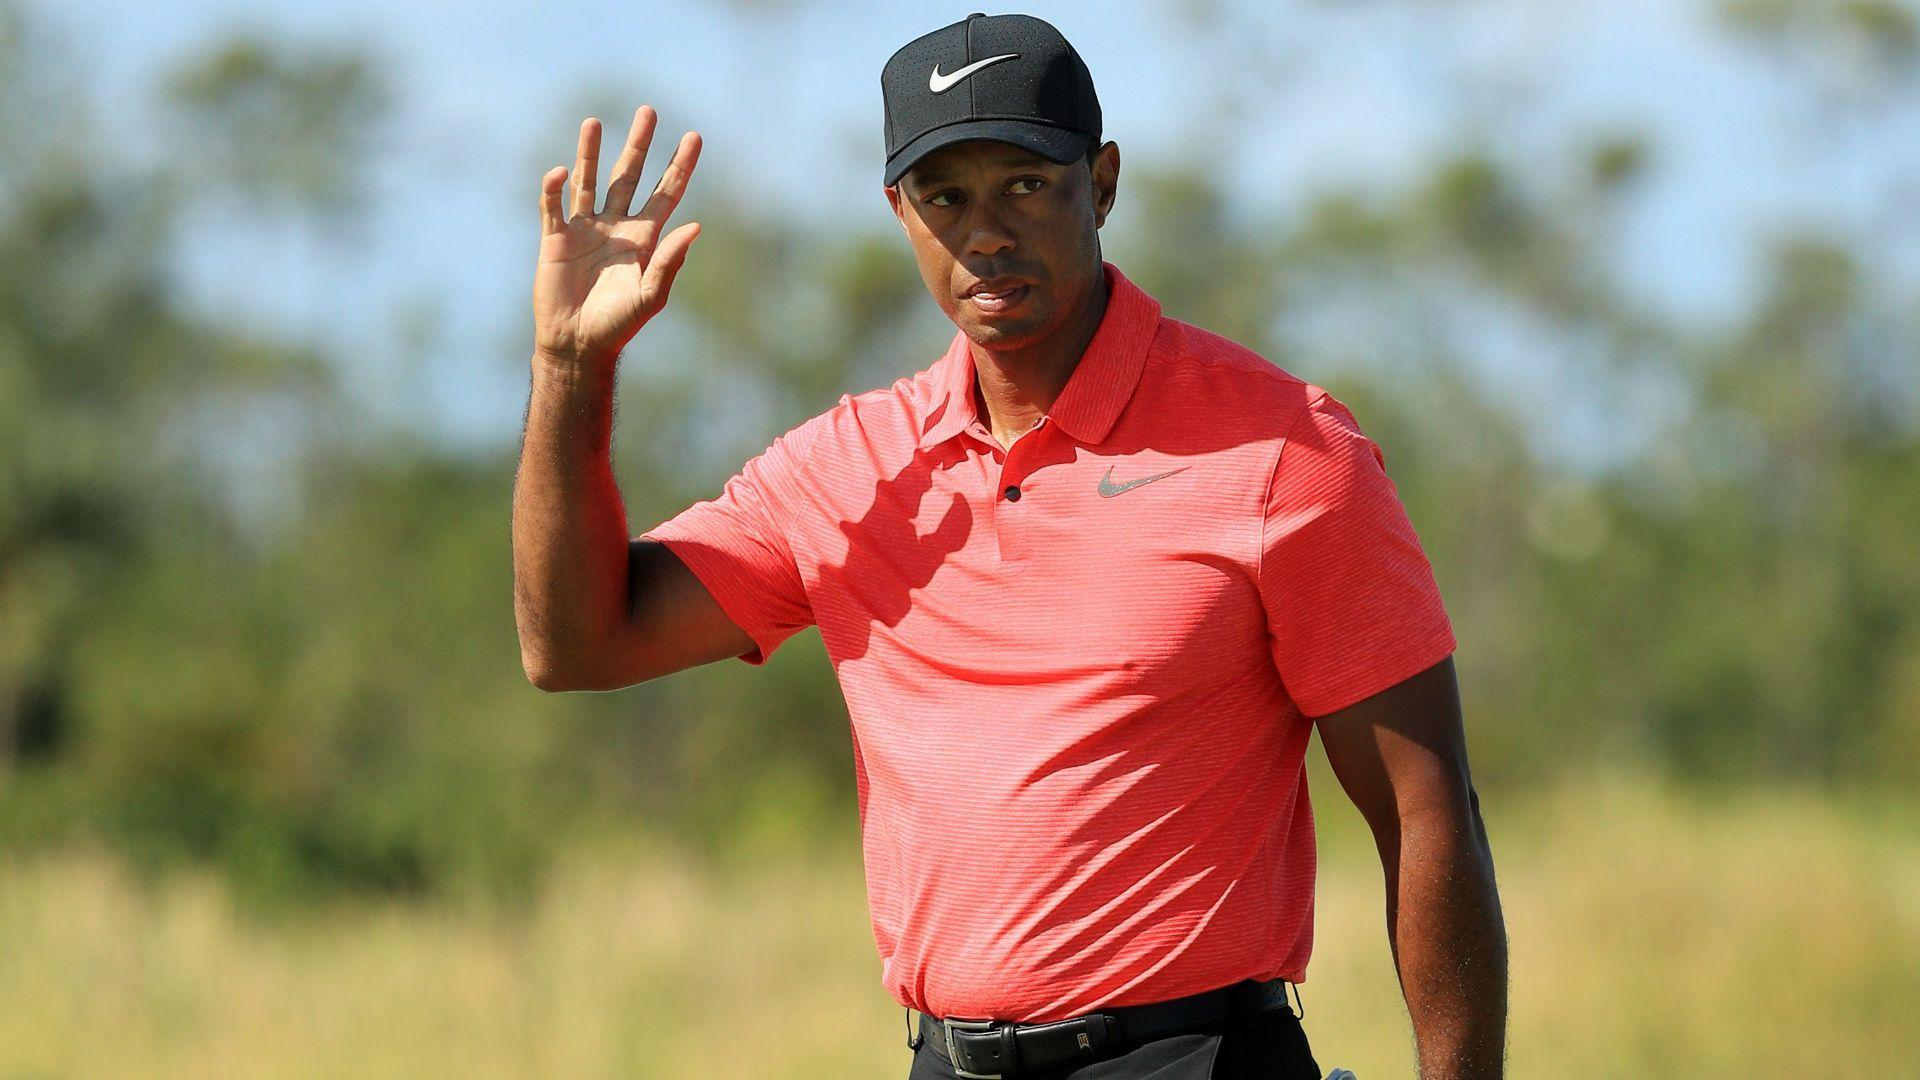 tiger woods improving his brand image